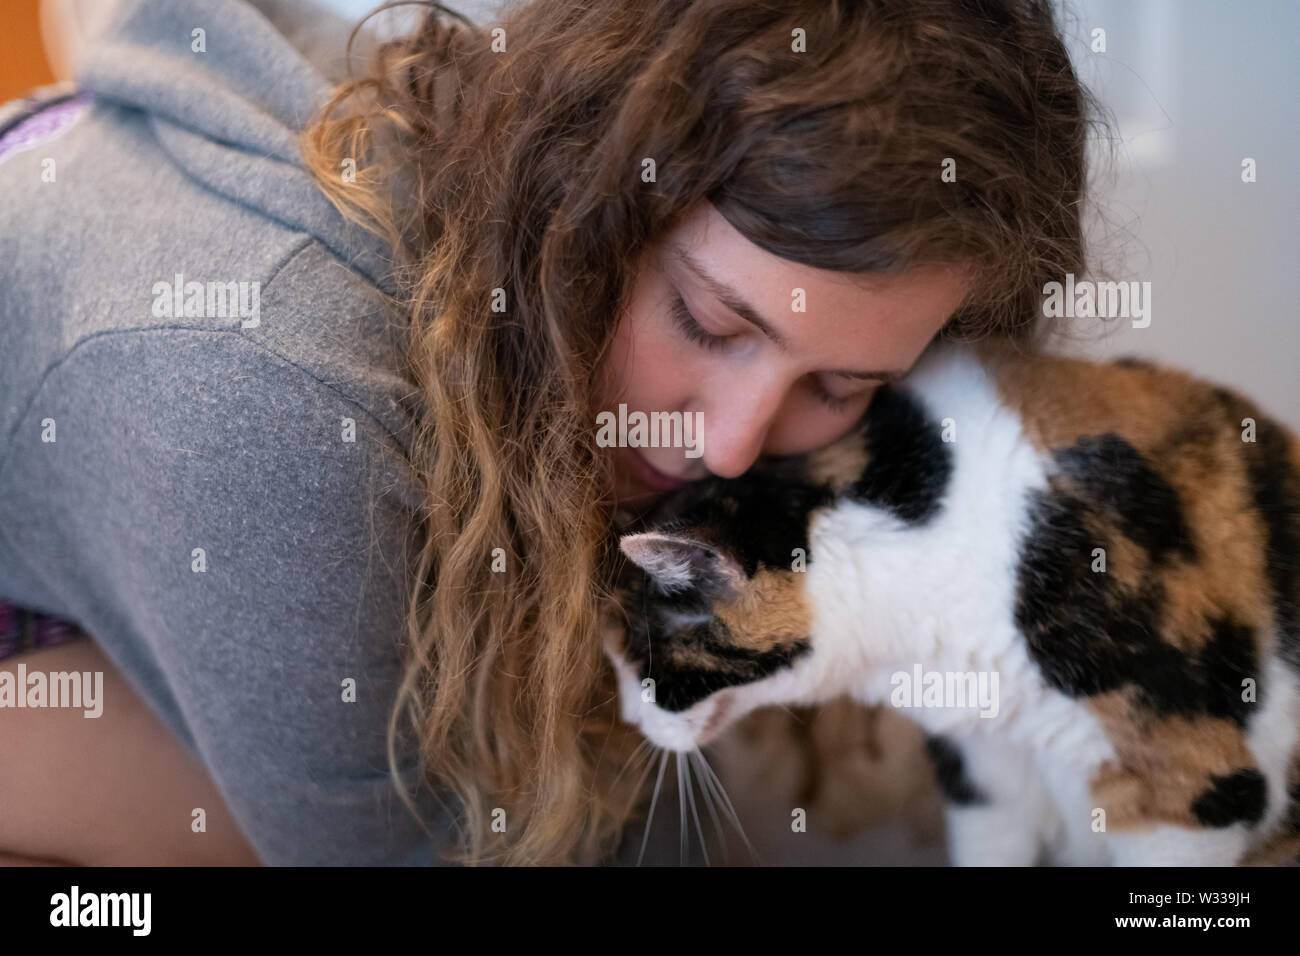 Closeup portrait of happy young woman bonding with calico cat pet companion, bumping rubbing bunting heads, friends showing affection - Stock Image